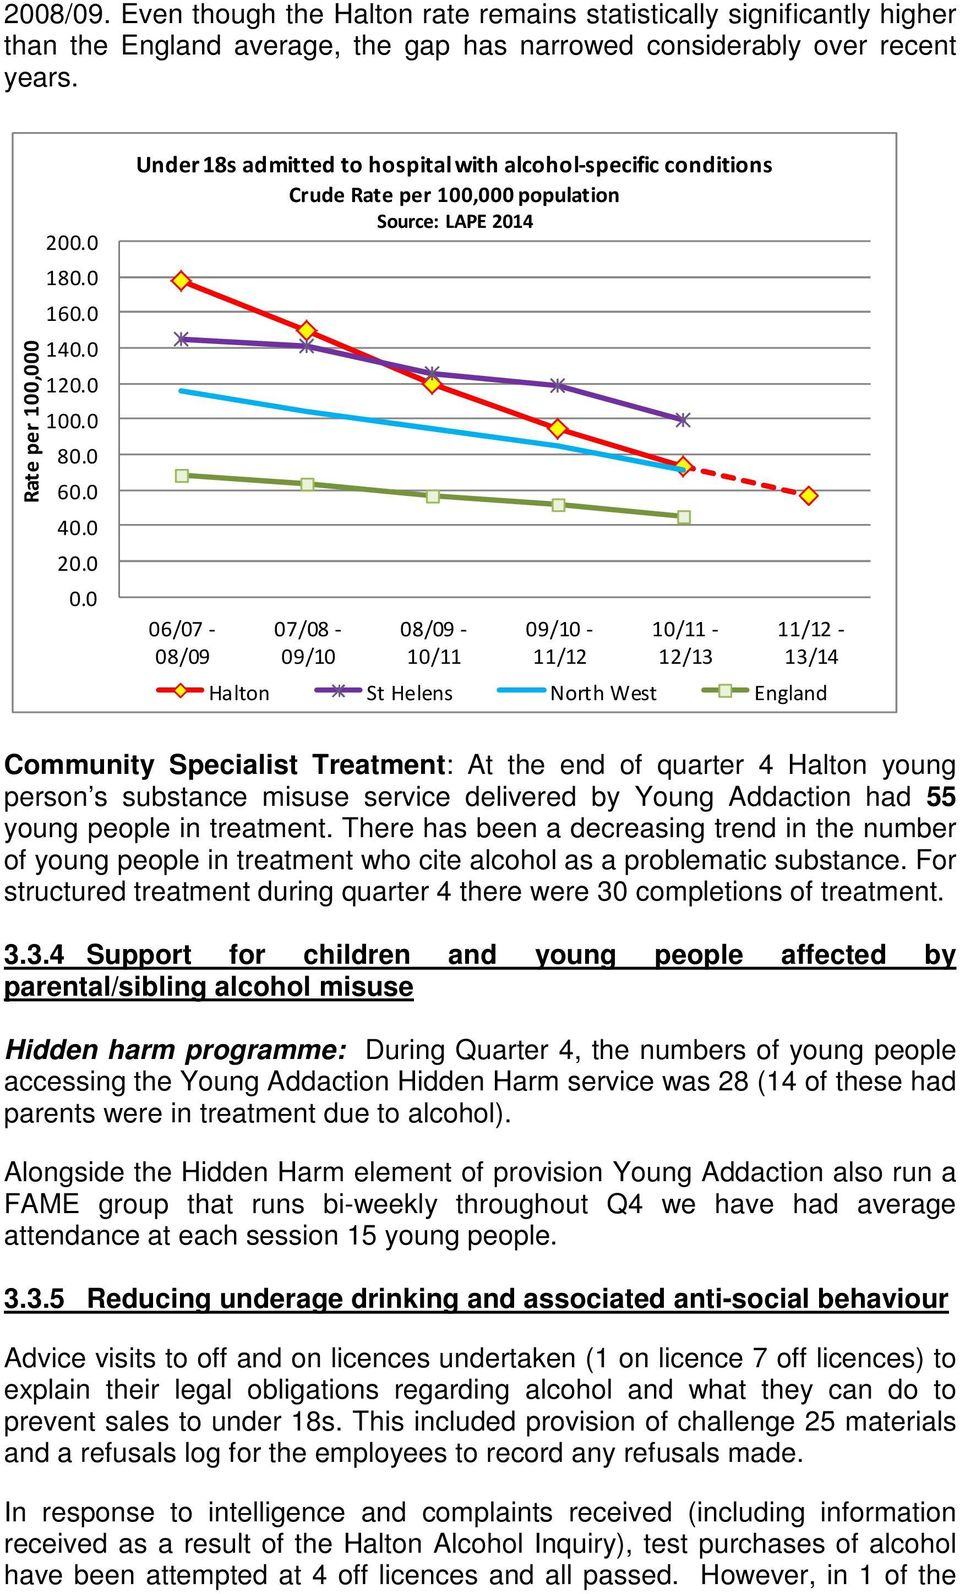 0 Under 18s admitted to hospital with alcohol-specific conditions Crude Rate per 100,000 population Source: LAPE 2014 06/07-08/09 07/08-09/10 08/09-10/11 09/10-11/12 10/11-12/13 11/12-13/14 Halton St